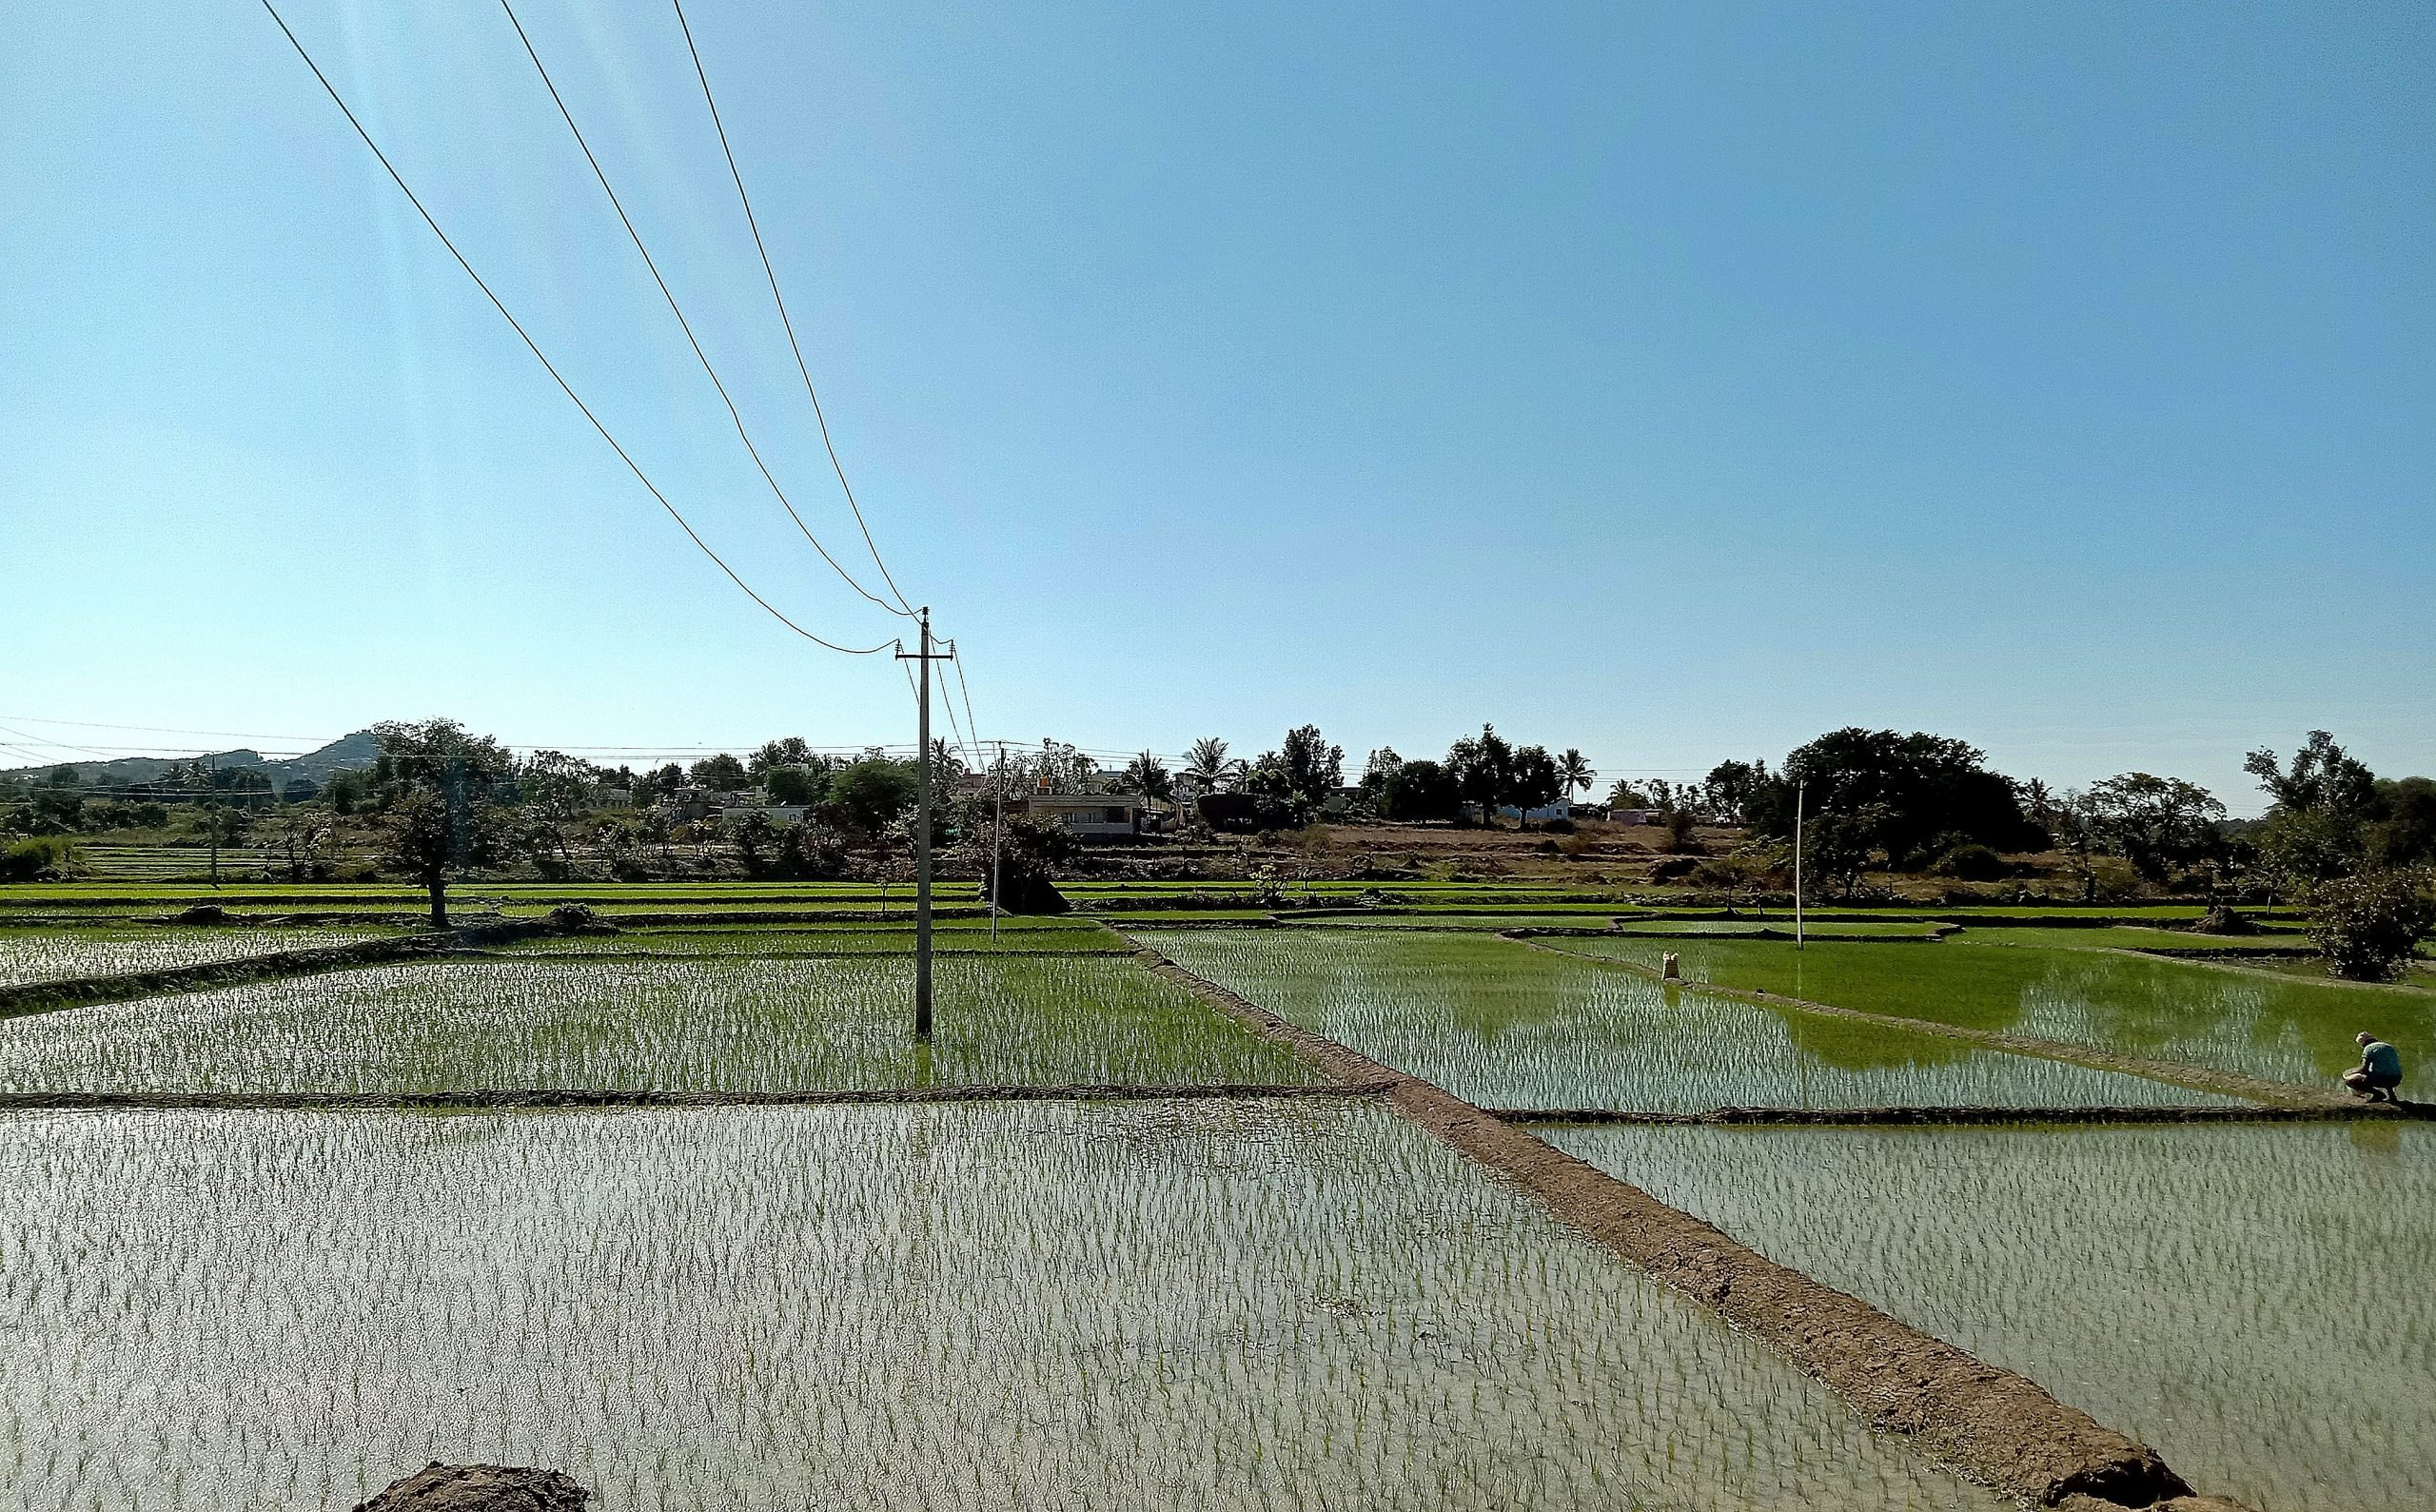 Paddy fields filled with water